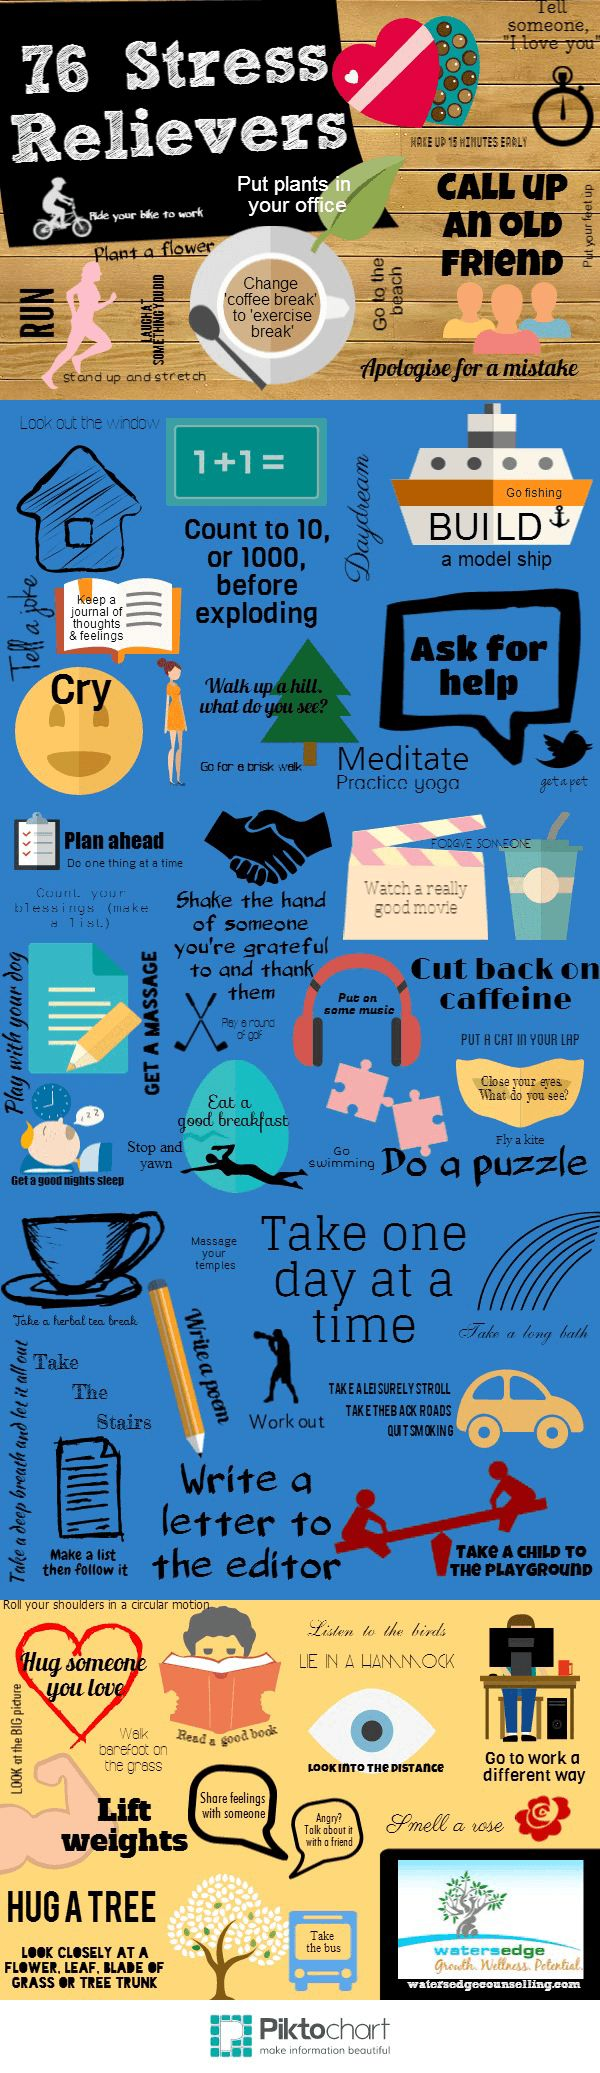 Top tips to staying stress free in the workplace infographic - 76 Stress Relievers Happy Life Happiness Positive Emotions Healthy Stress Lifestyle Health Mental Health Healthy Living Remedies Remedy Infographic Self